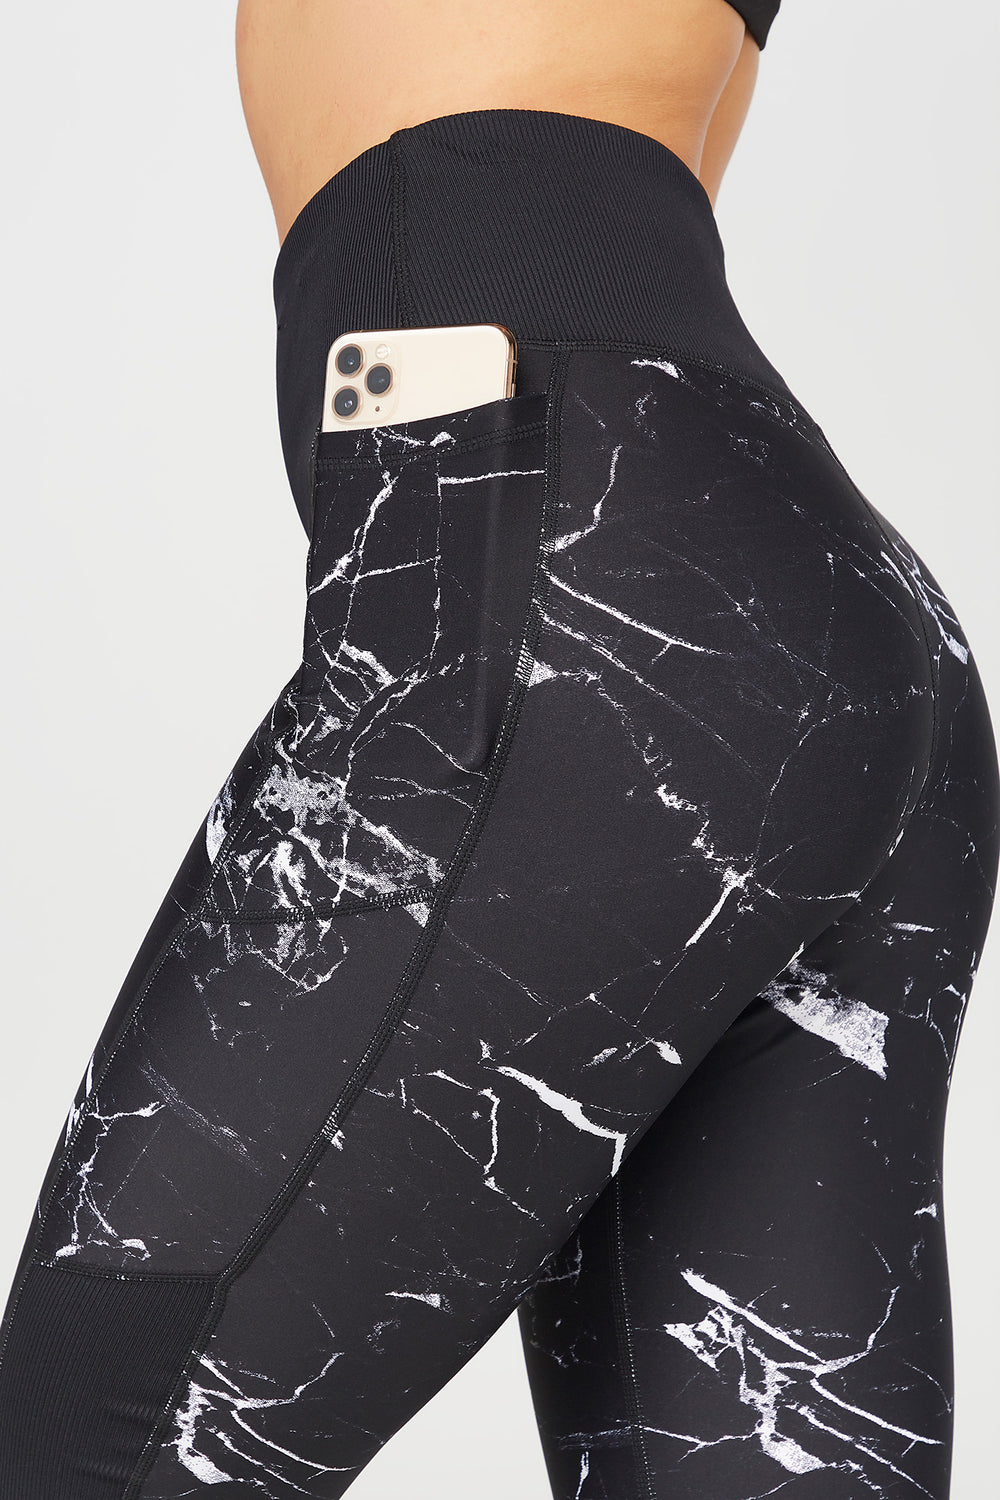 Marble High-Rise Dual Pocket Active Legging Black with White